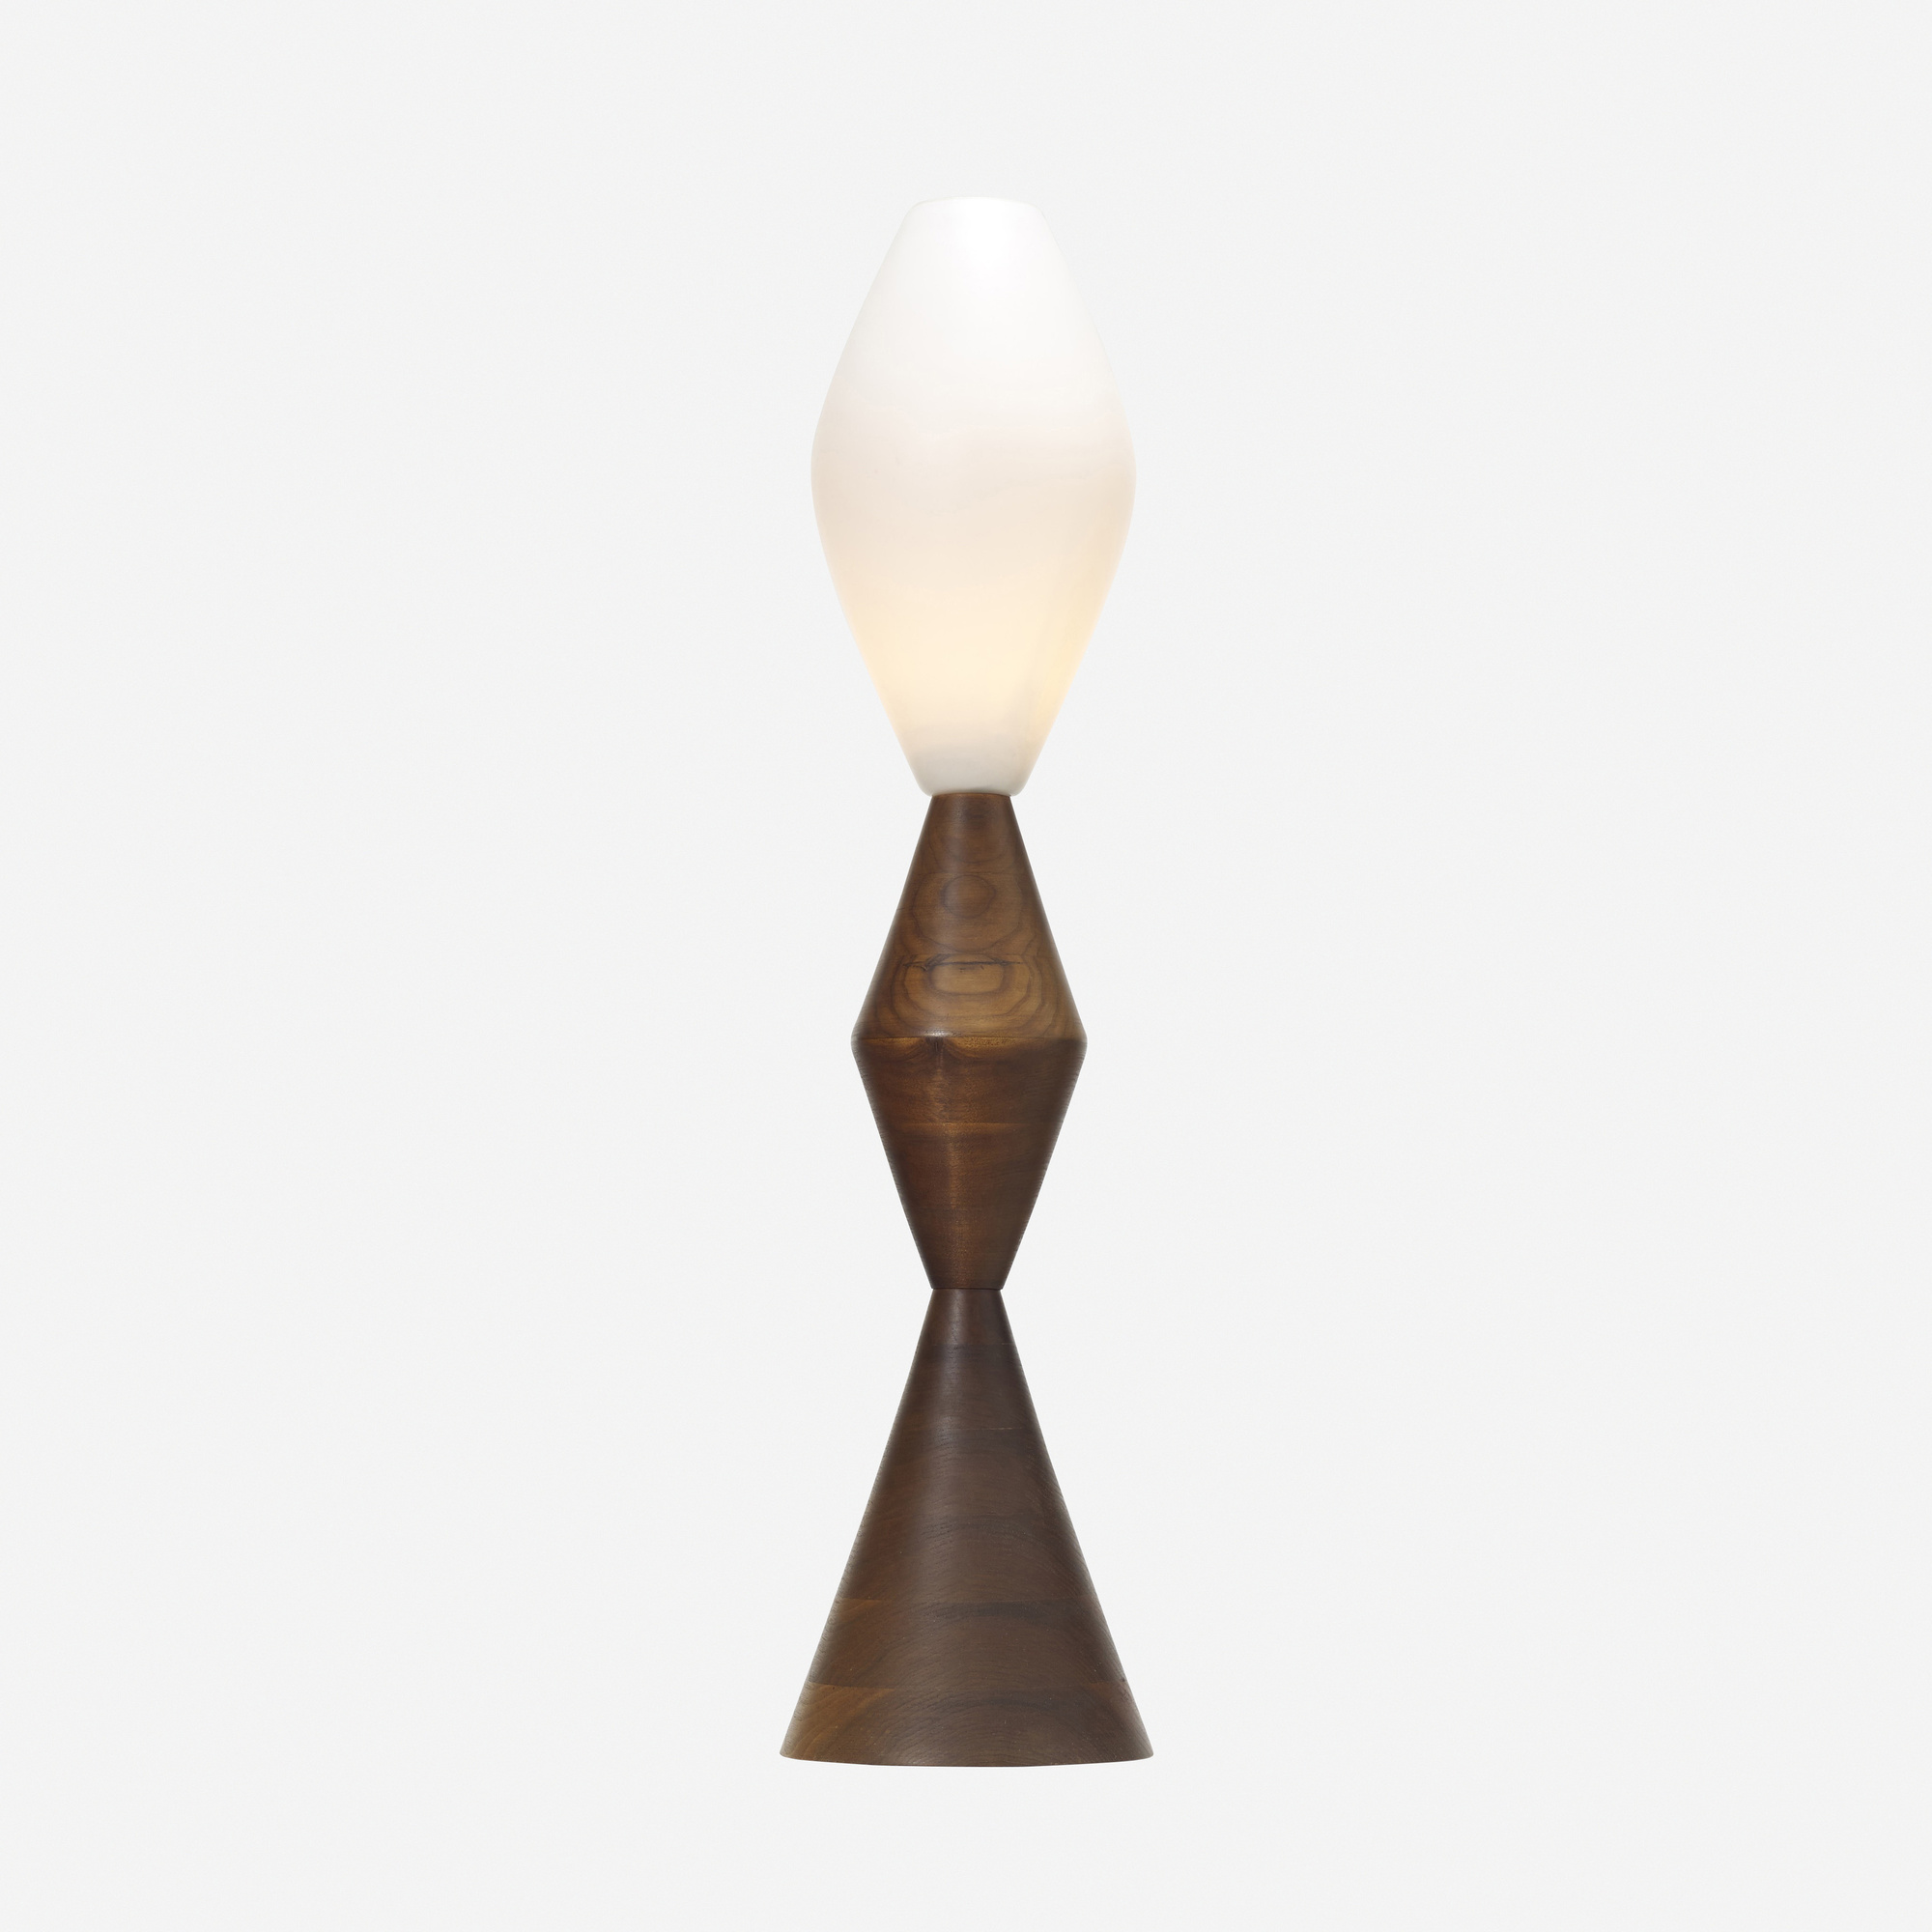 148: Phillip Lloyd Powell / table lamp (1 of 2)